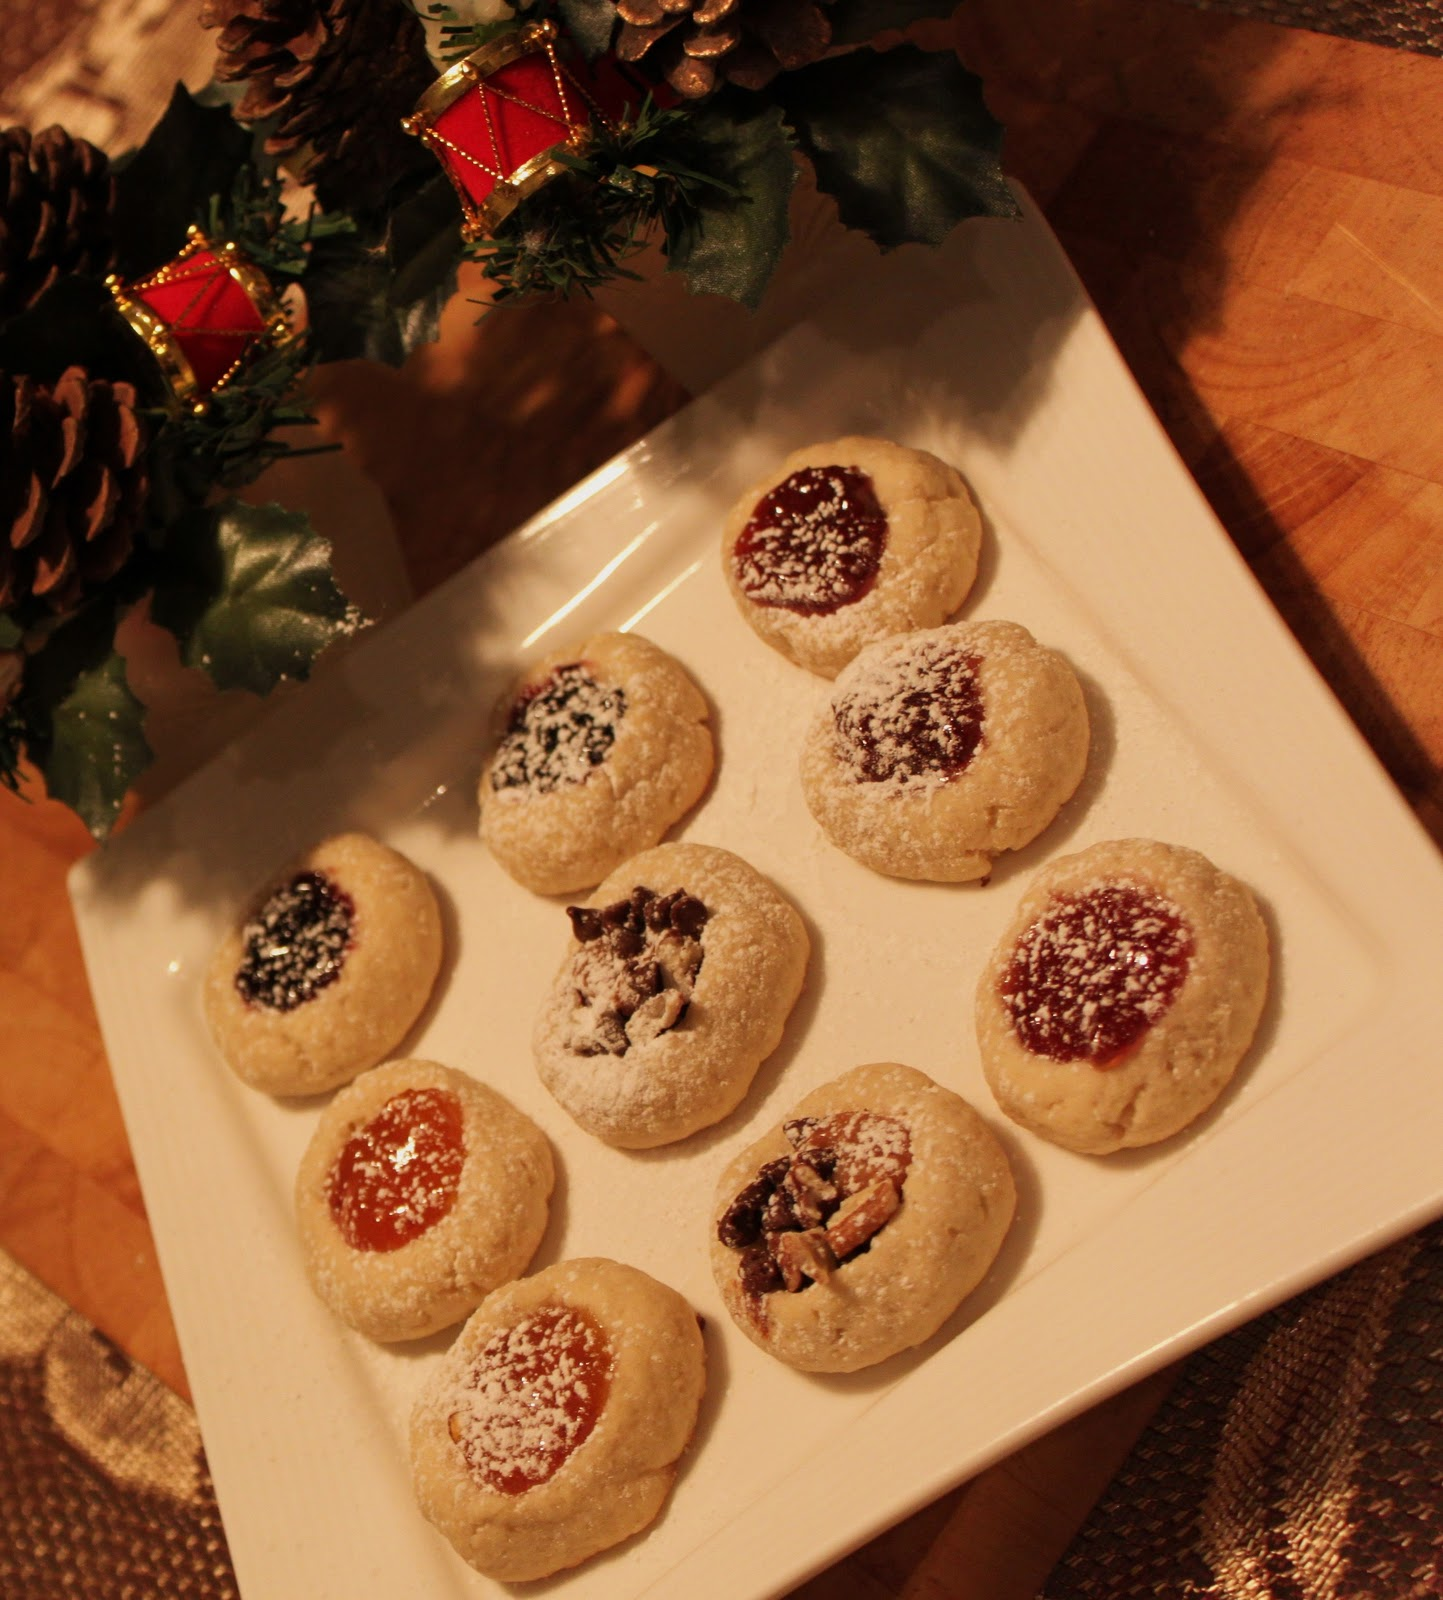 ... Style Cuisine: Pecan Turtle Thumbprint or Jam Thumbprint Cookies